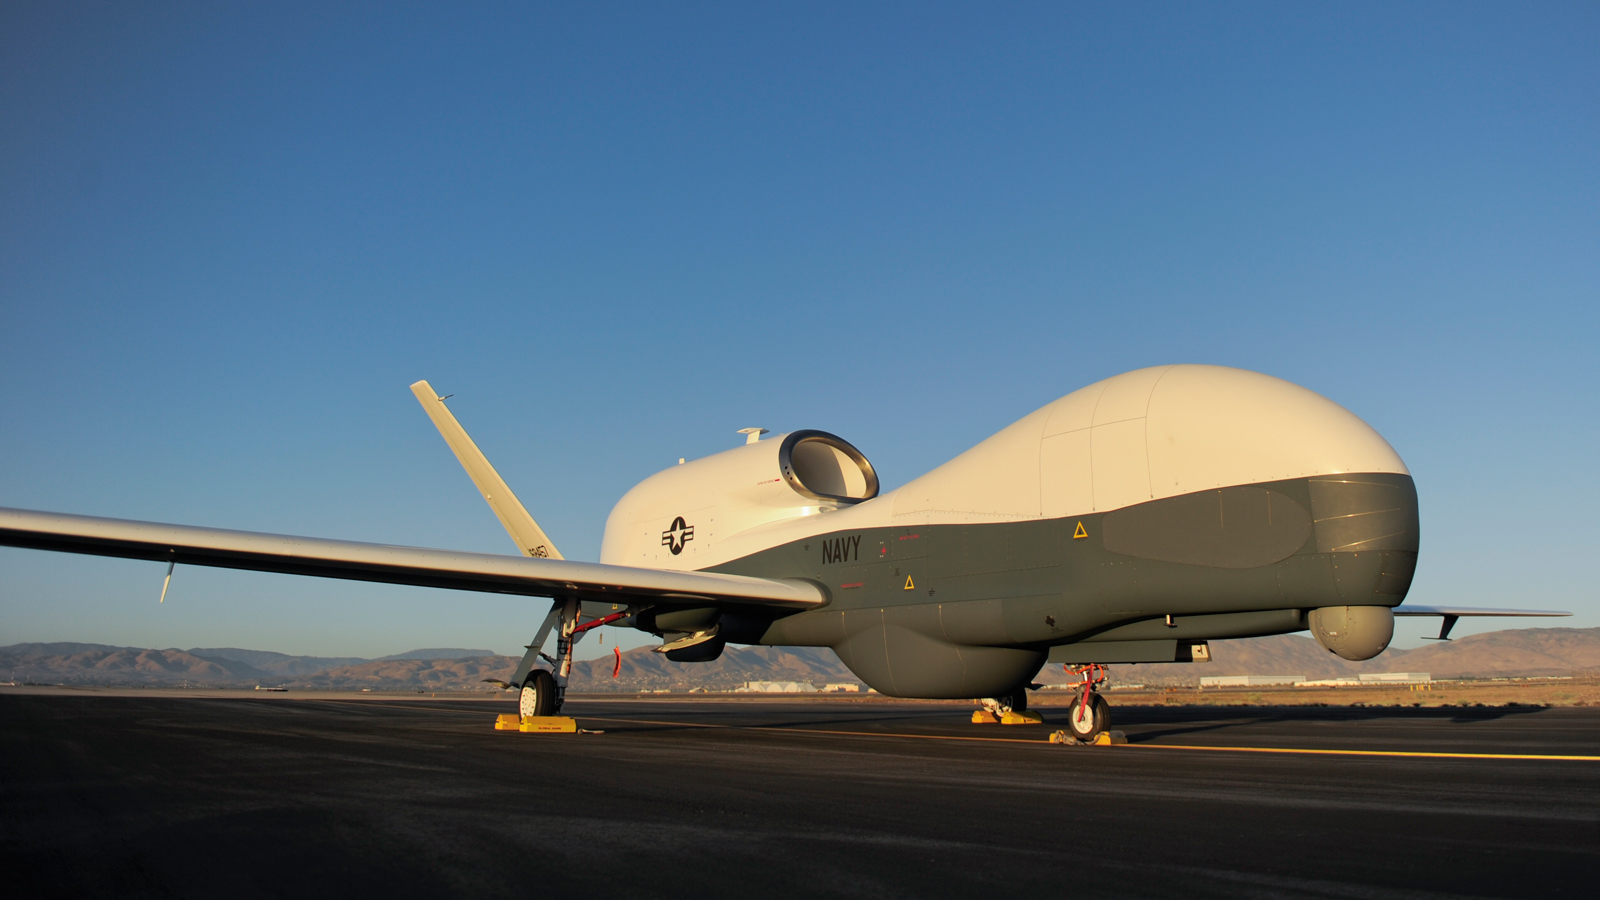 Click here to read This Is the New Spy Plane of the US Navy